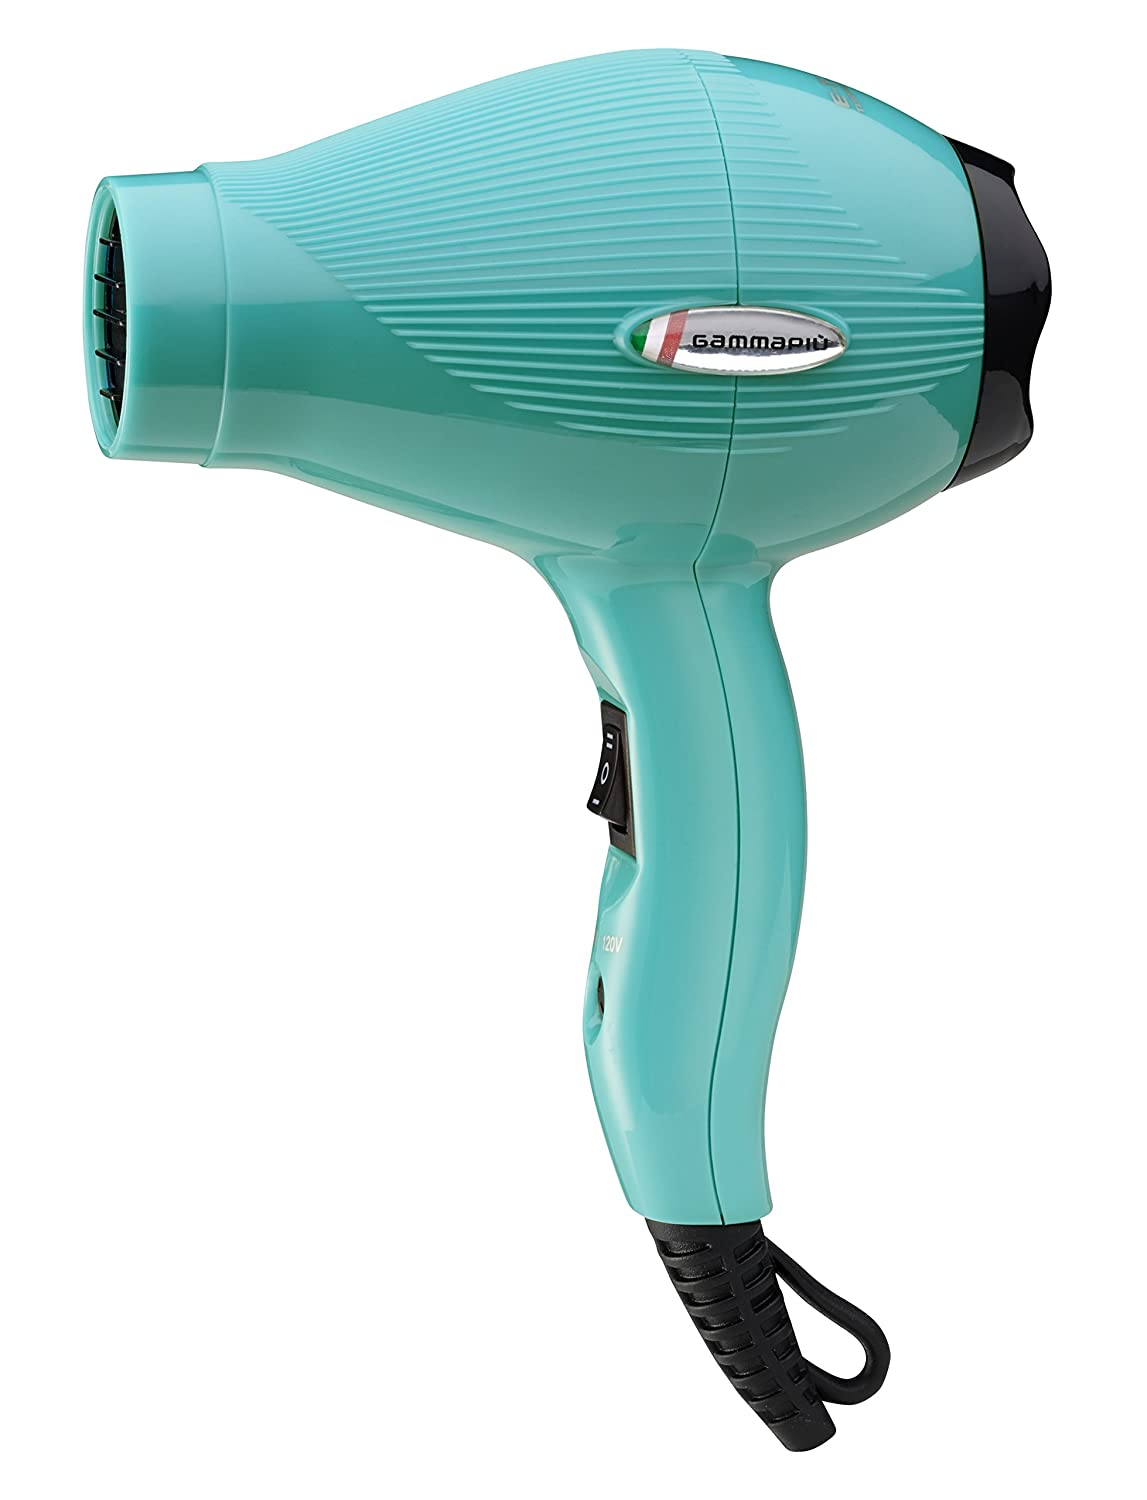 Amazon.com  Gammapiu ETC Travel Hair Dryer - Professional Hair Dryer for  Travel - Duel Voltage US and European Hair Dryer - Turquoise  Beauty 7ad6eeb75a0